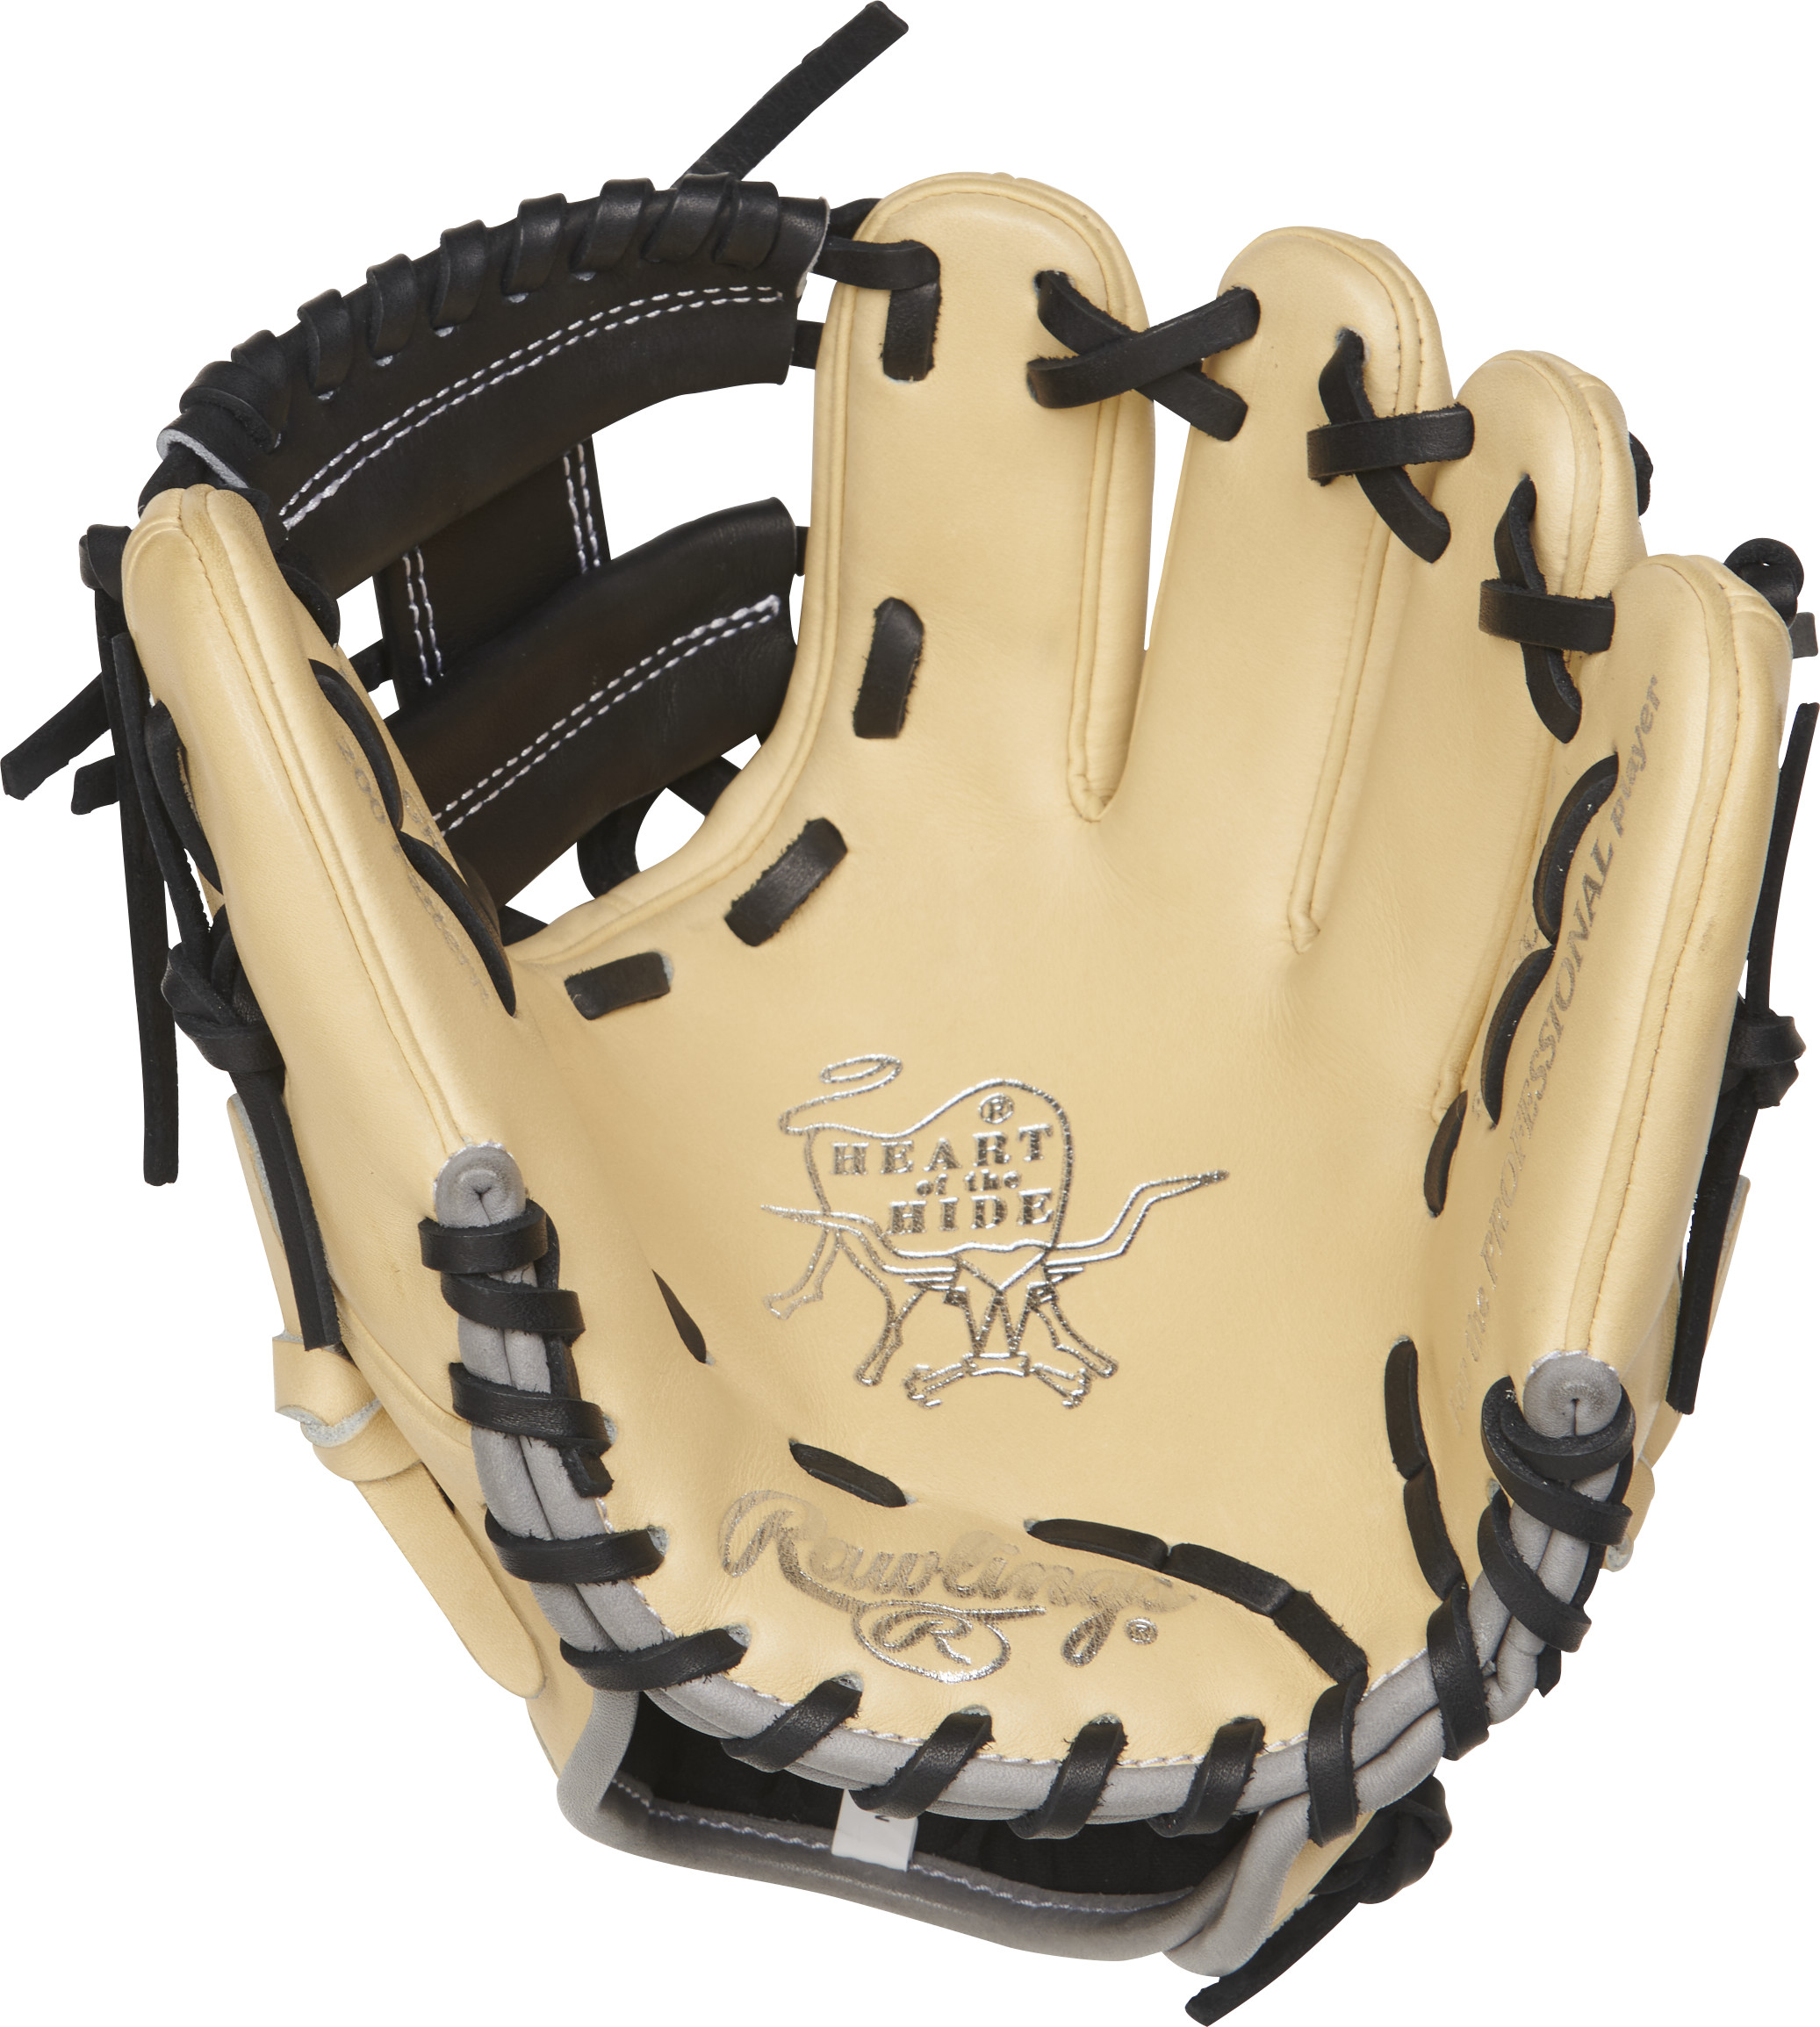 http://www.bestbatdeals.com/images/gloves/rawlings/PRO200TR-2C-1.jpg